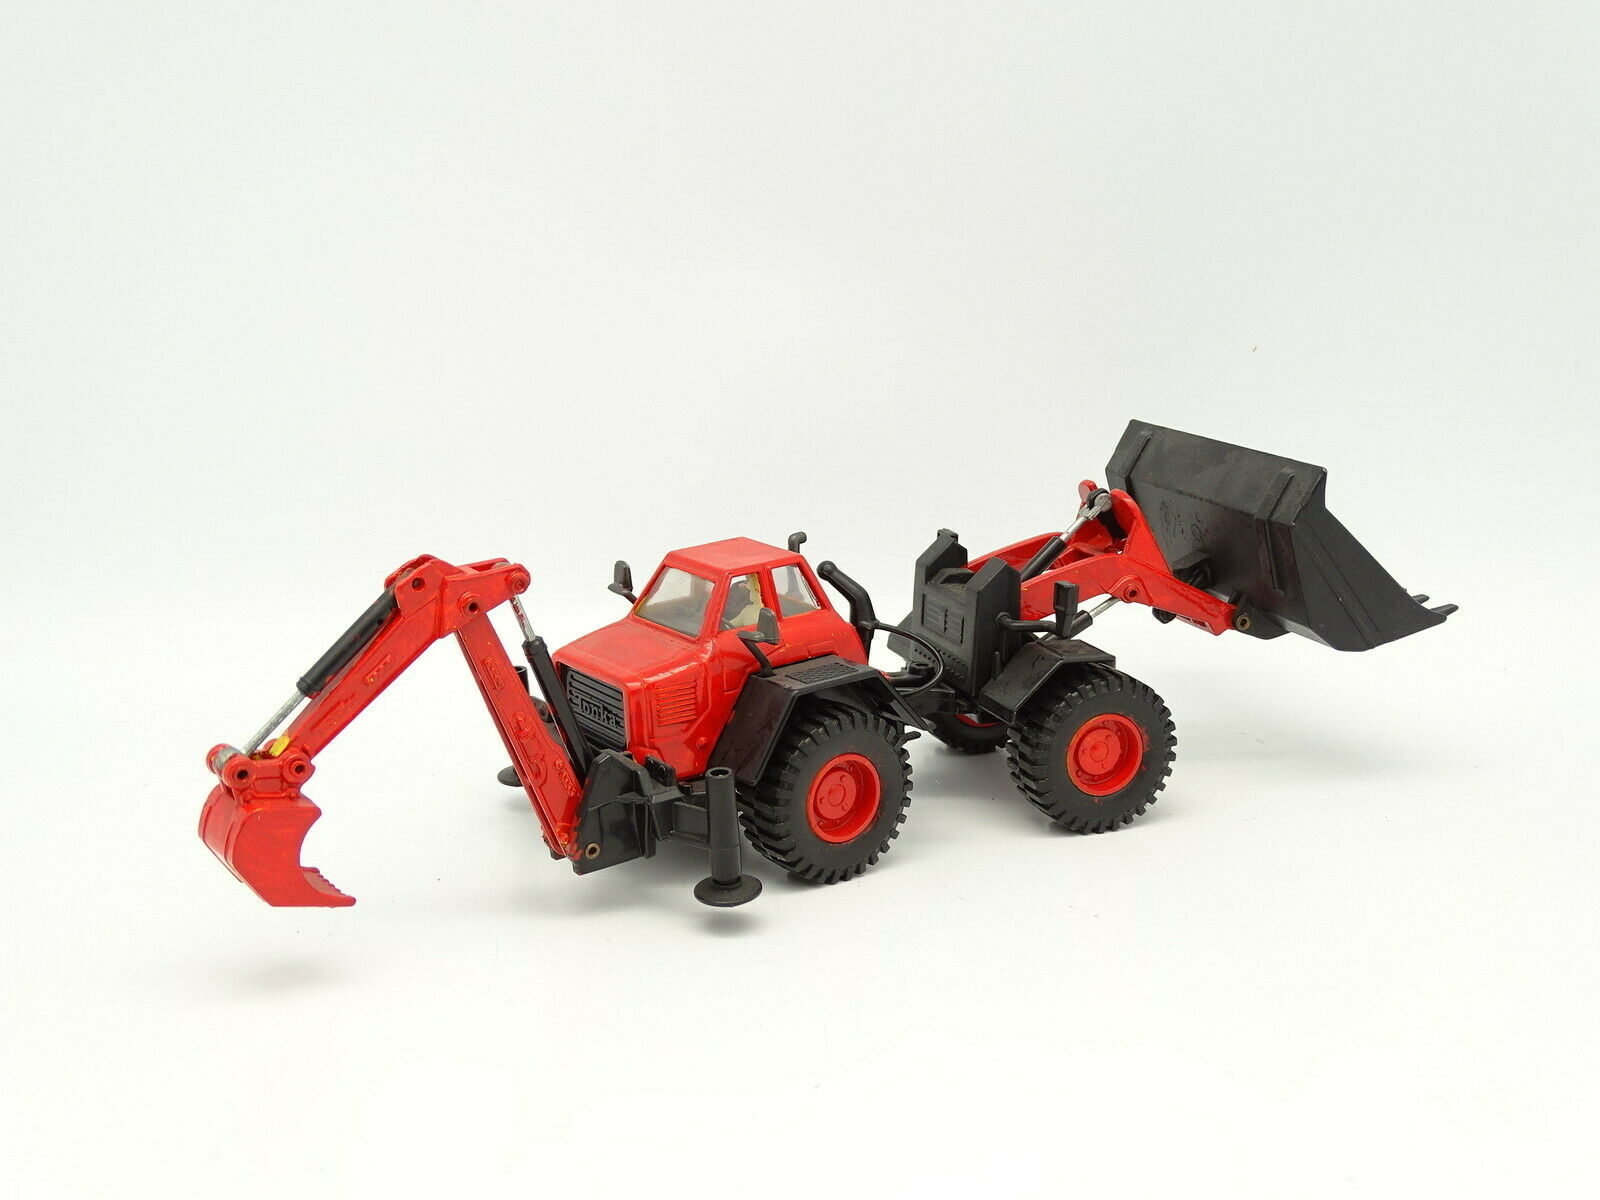 Tonka 1 1 1 50 - Articulated Excavator Rouge b7fd8b